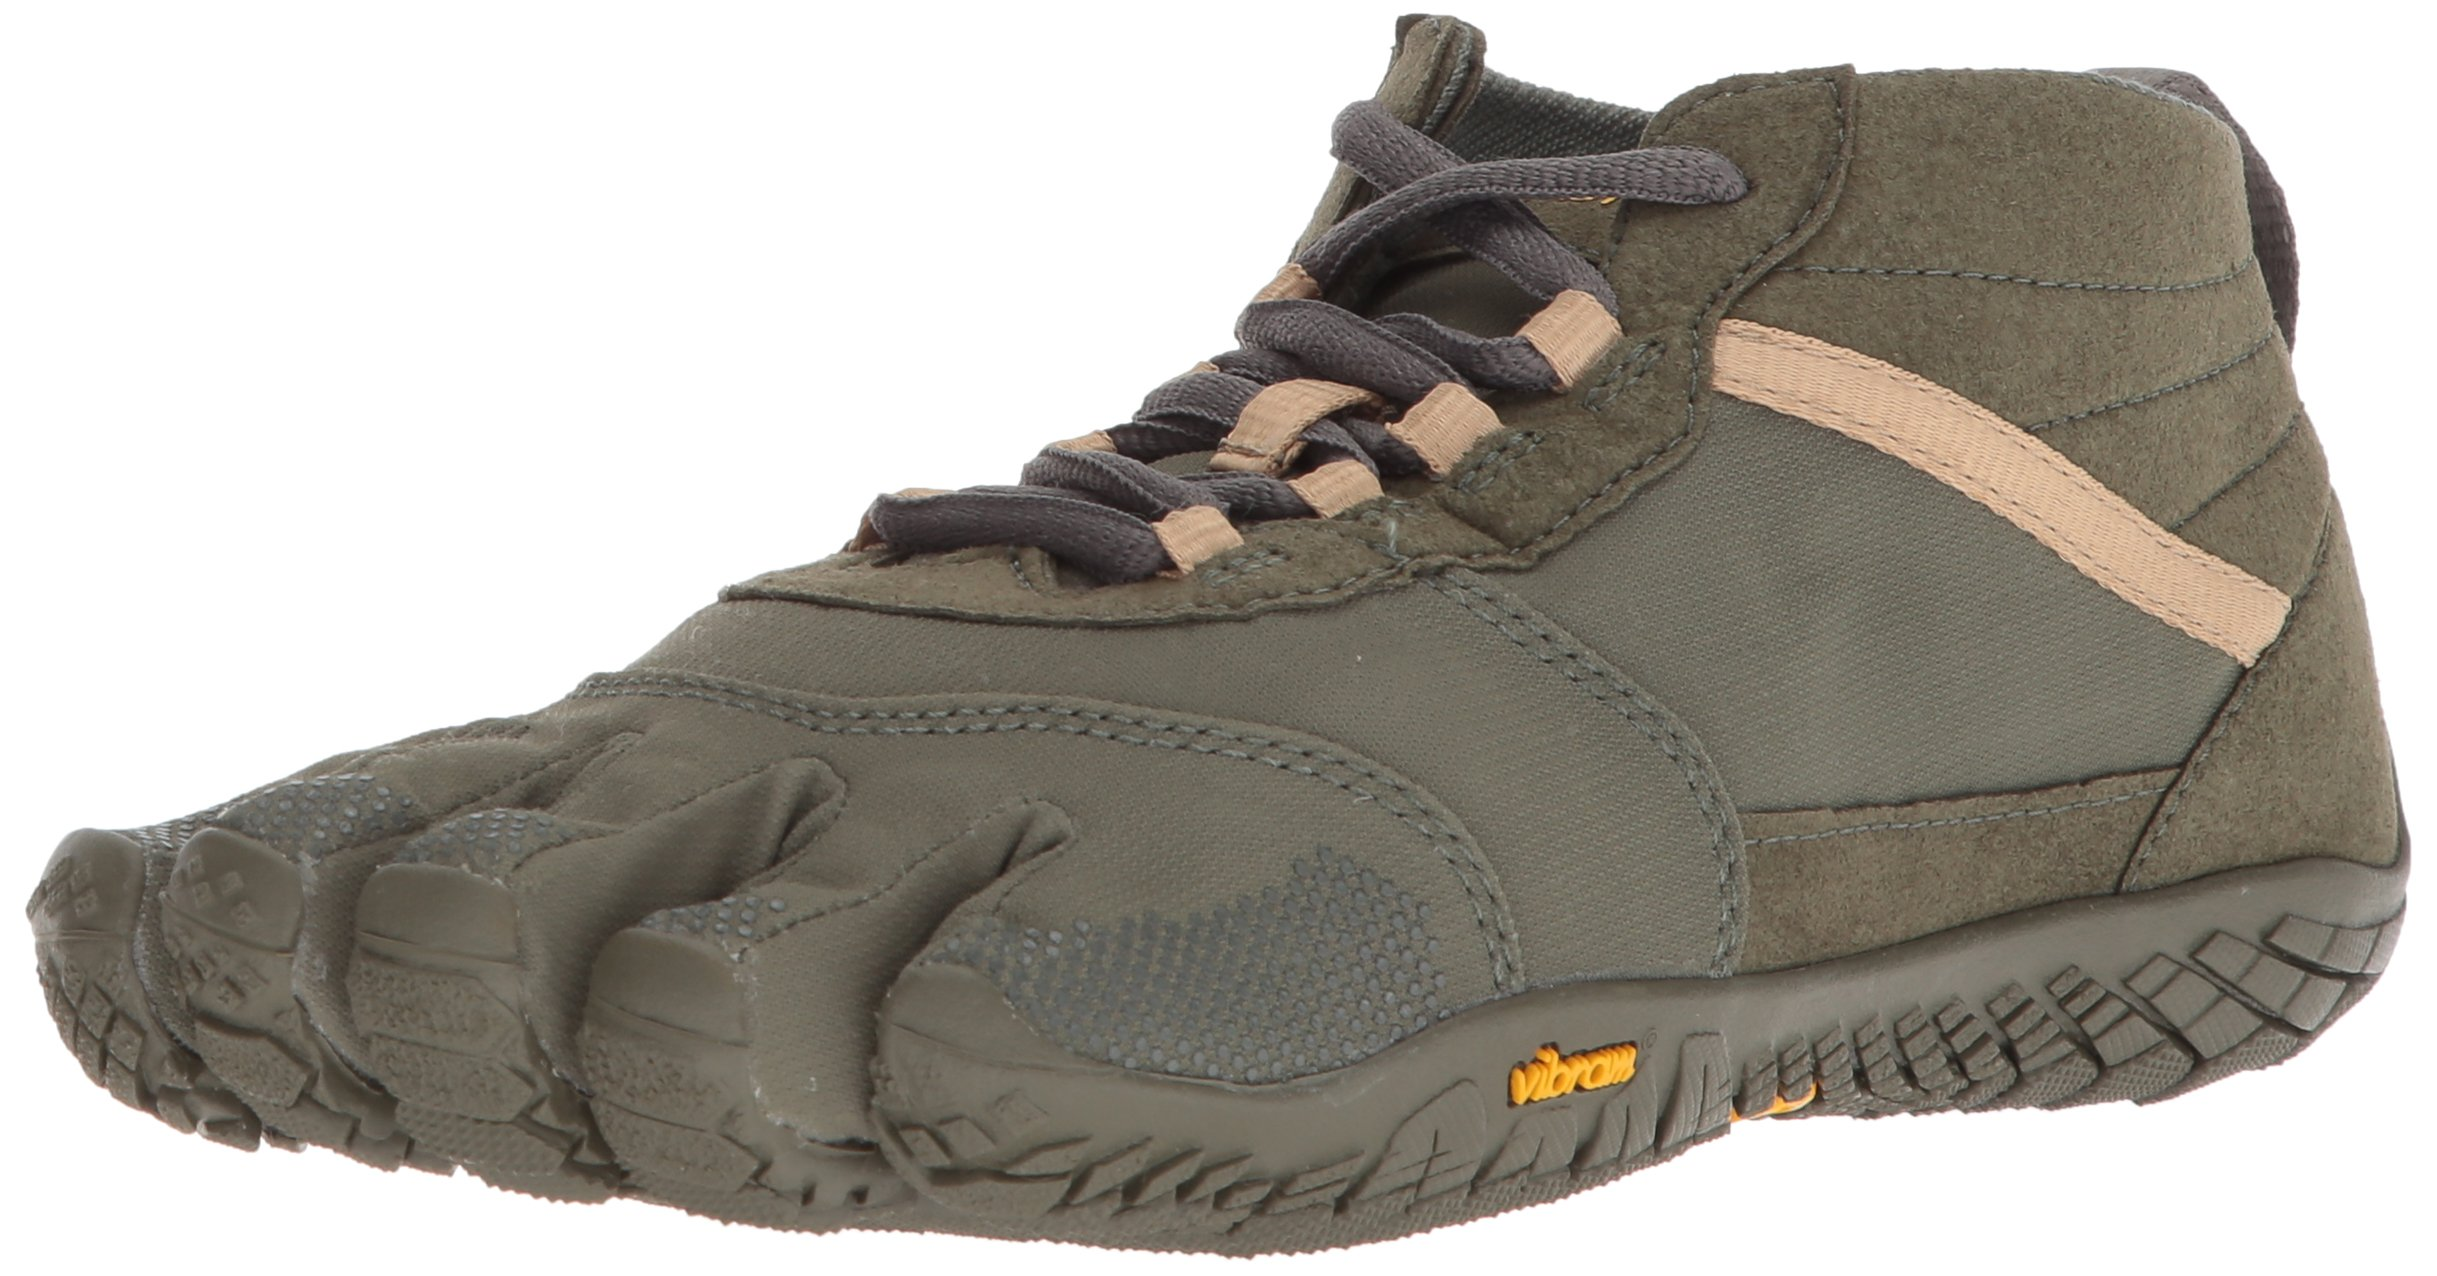 Vibram Men's s V-Trek Khaki/Black Hiking Shoe